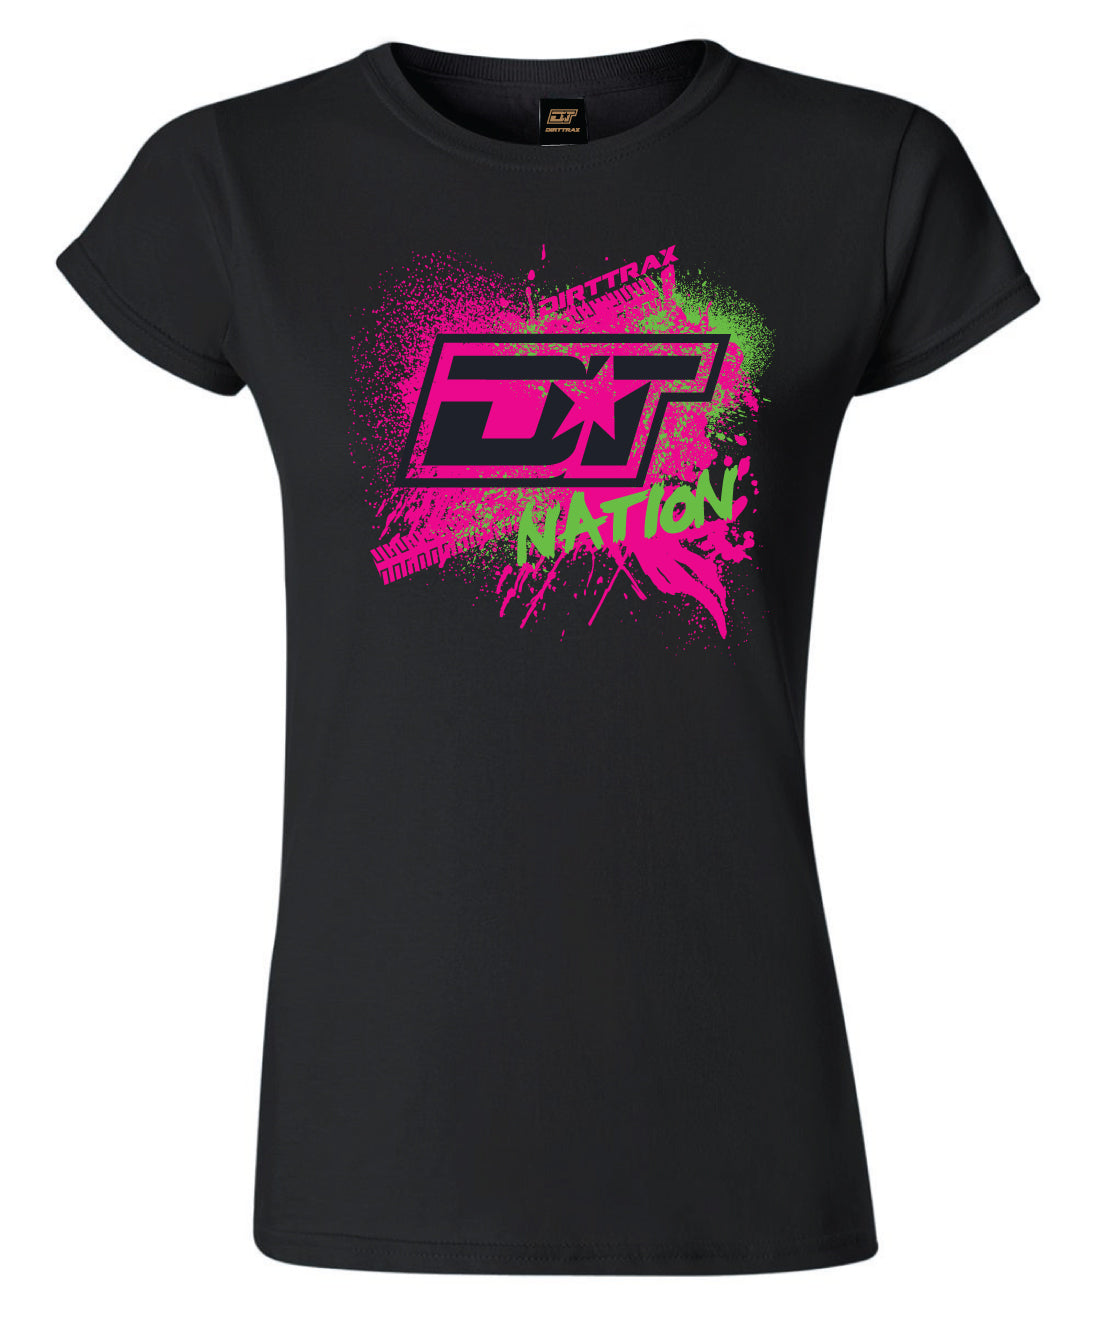 Ladies DT Nation Splatter Tee